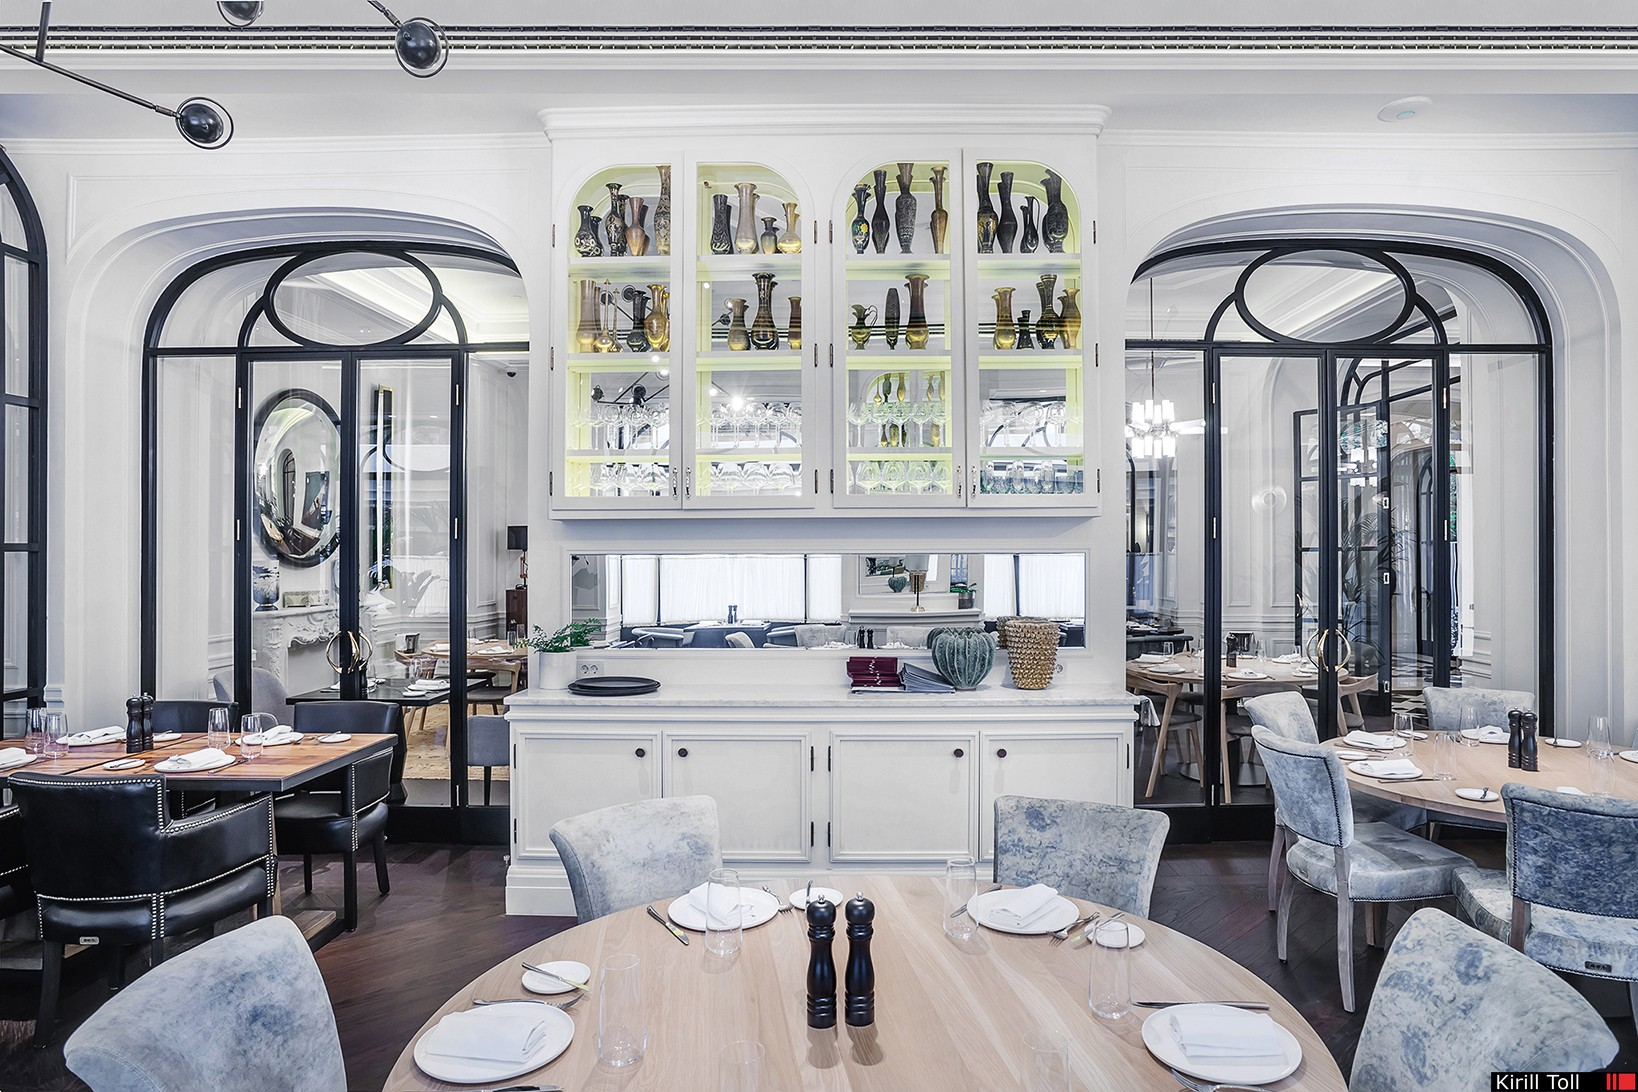 Bright restaurant in interior photos. Real estate in the portfolio of professional photographer Kirill Toll